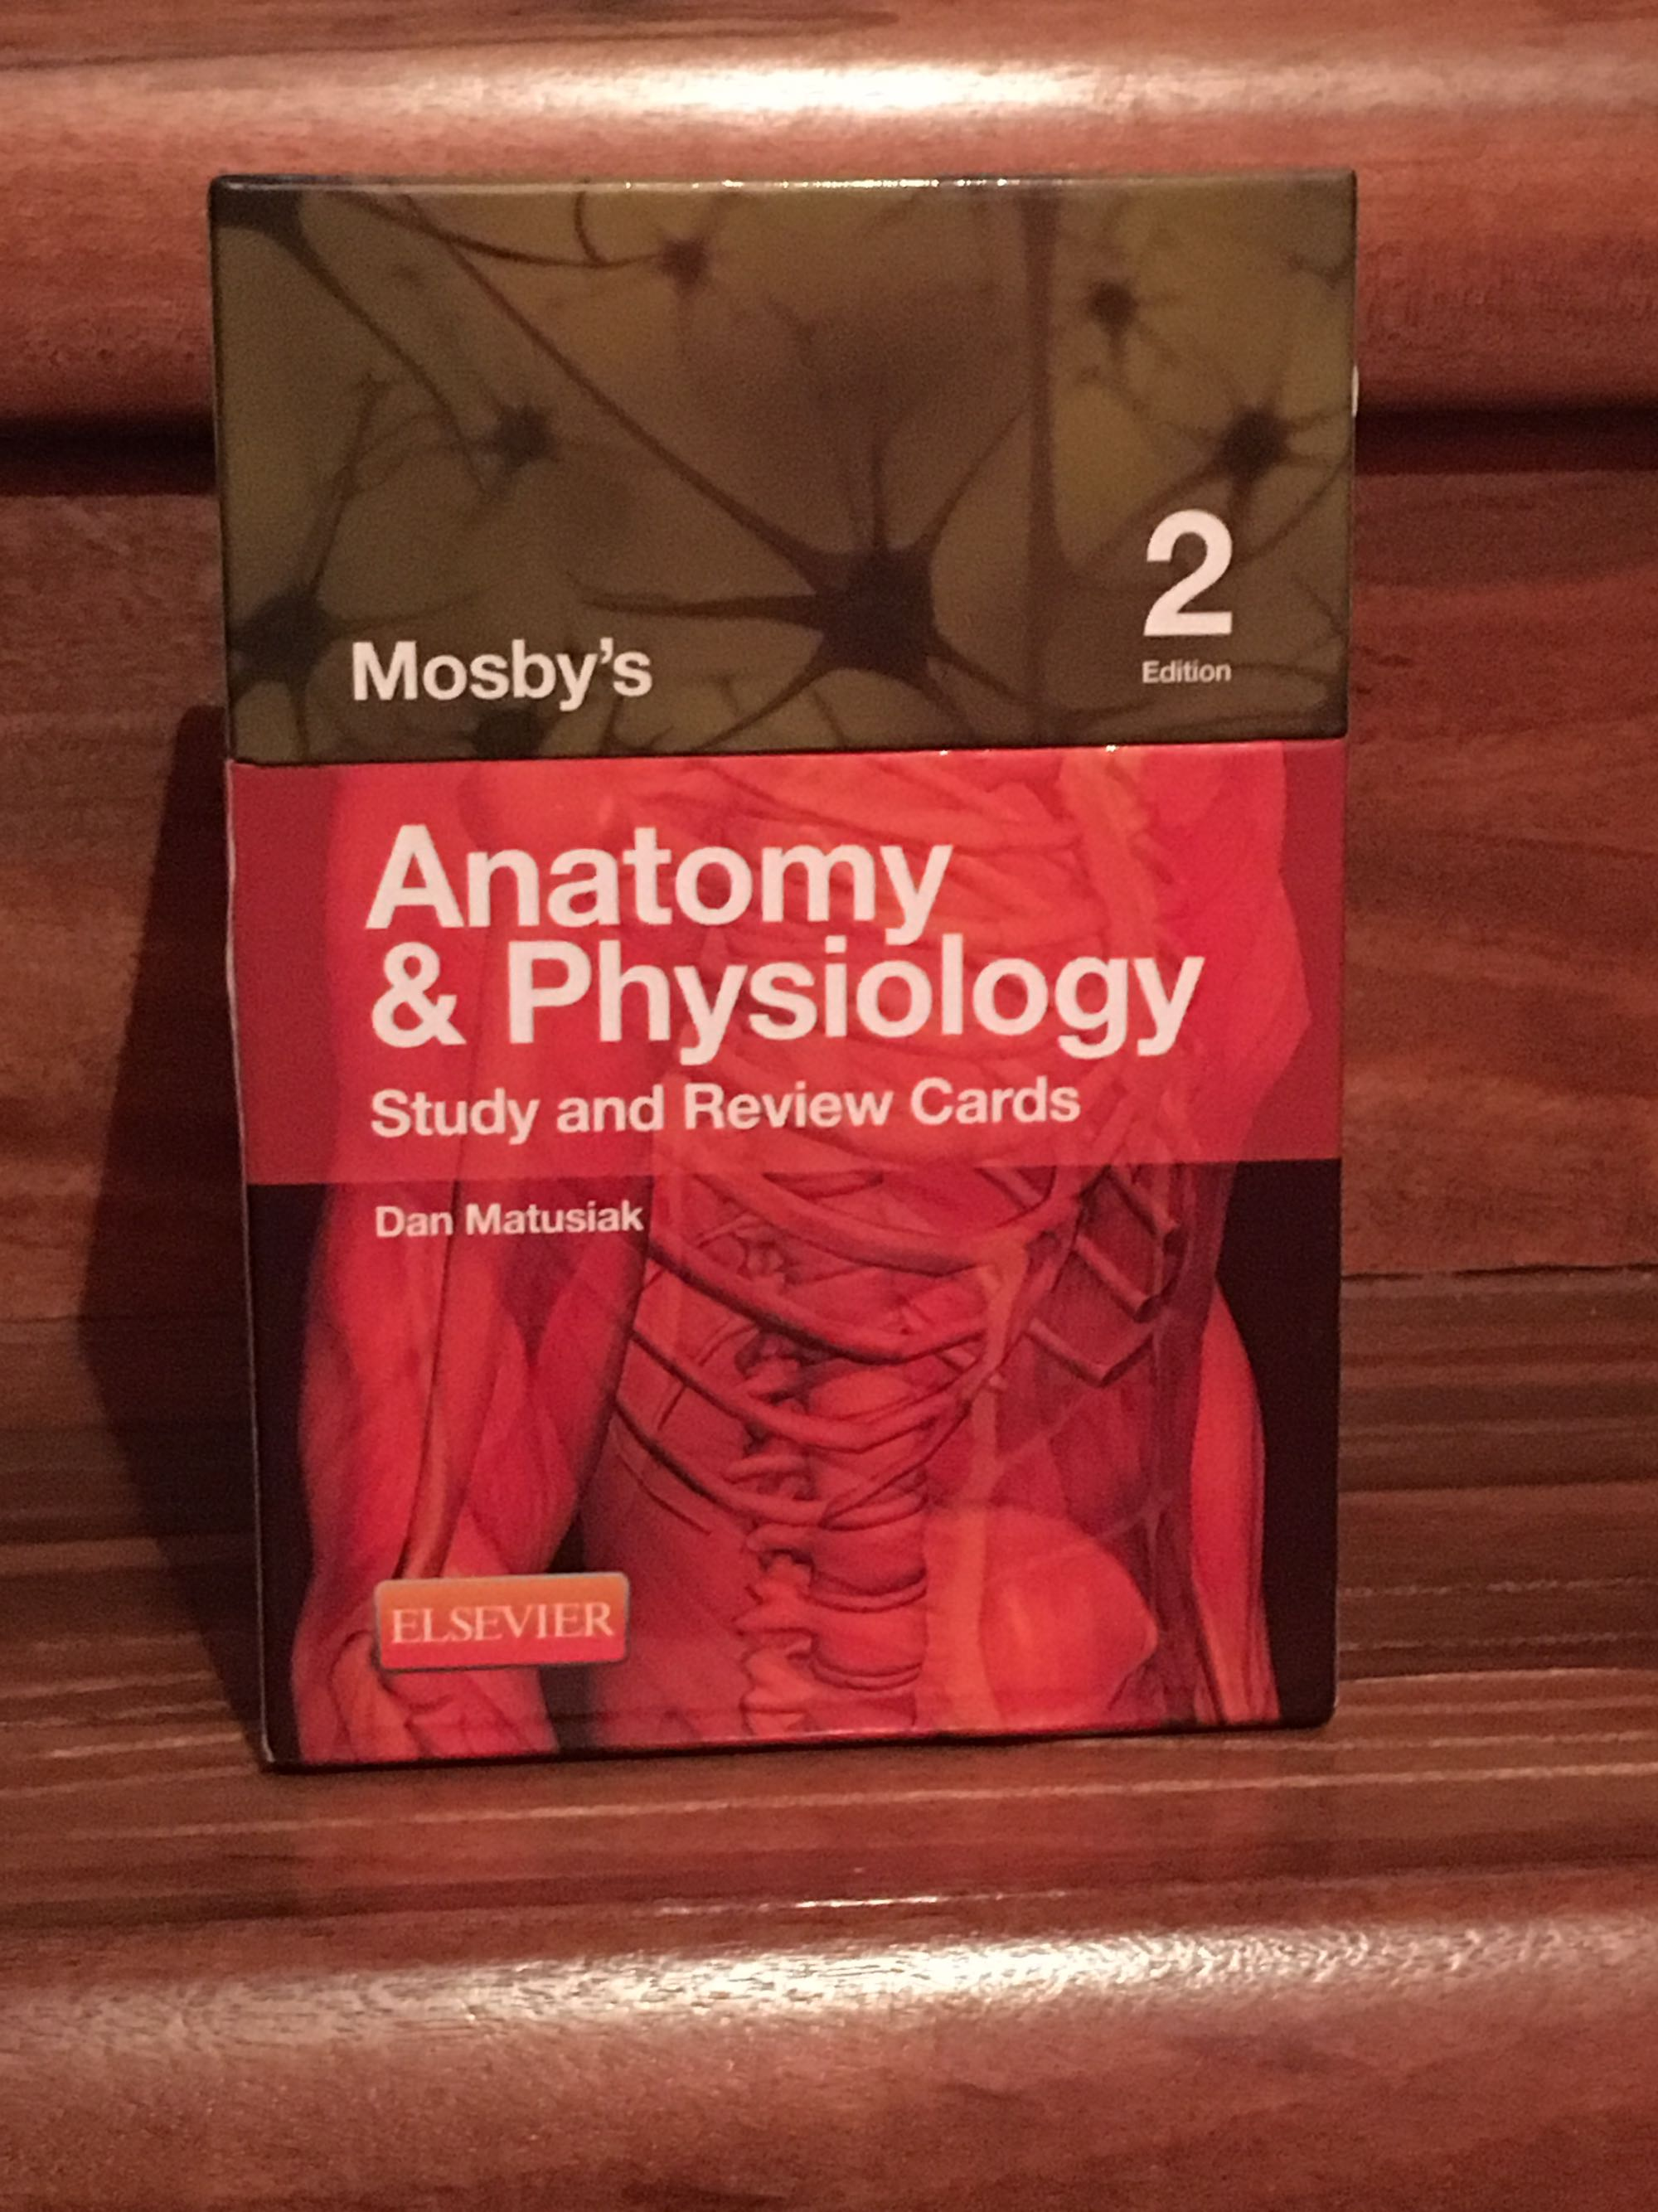 Free Grays Anatomy For Students Flash Cards With - mandegar.info